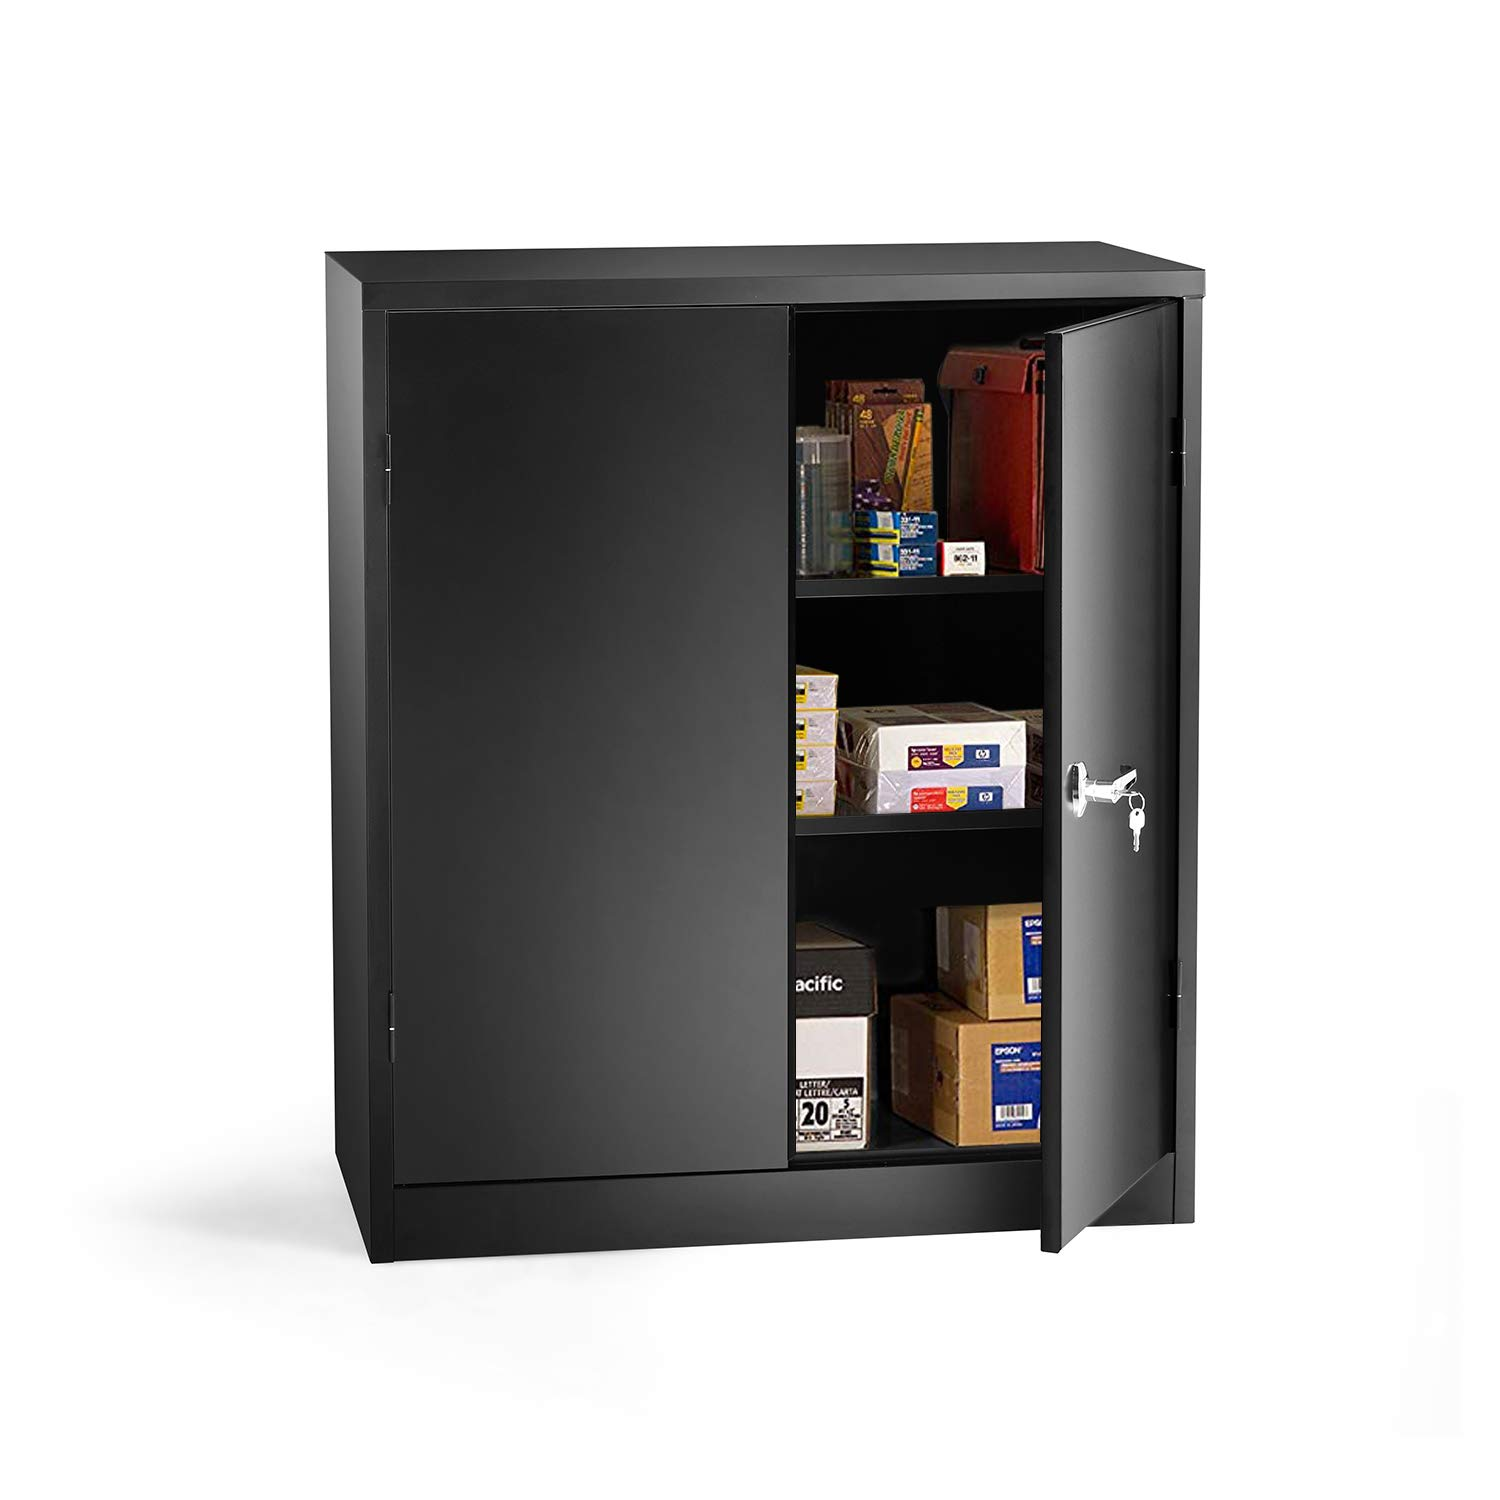 INVIE Black Steel Snapit Storage Cabinet with 2 Adjustable Shelves, Jumbo Storage Cabinet, Counter Height